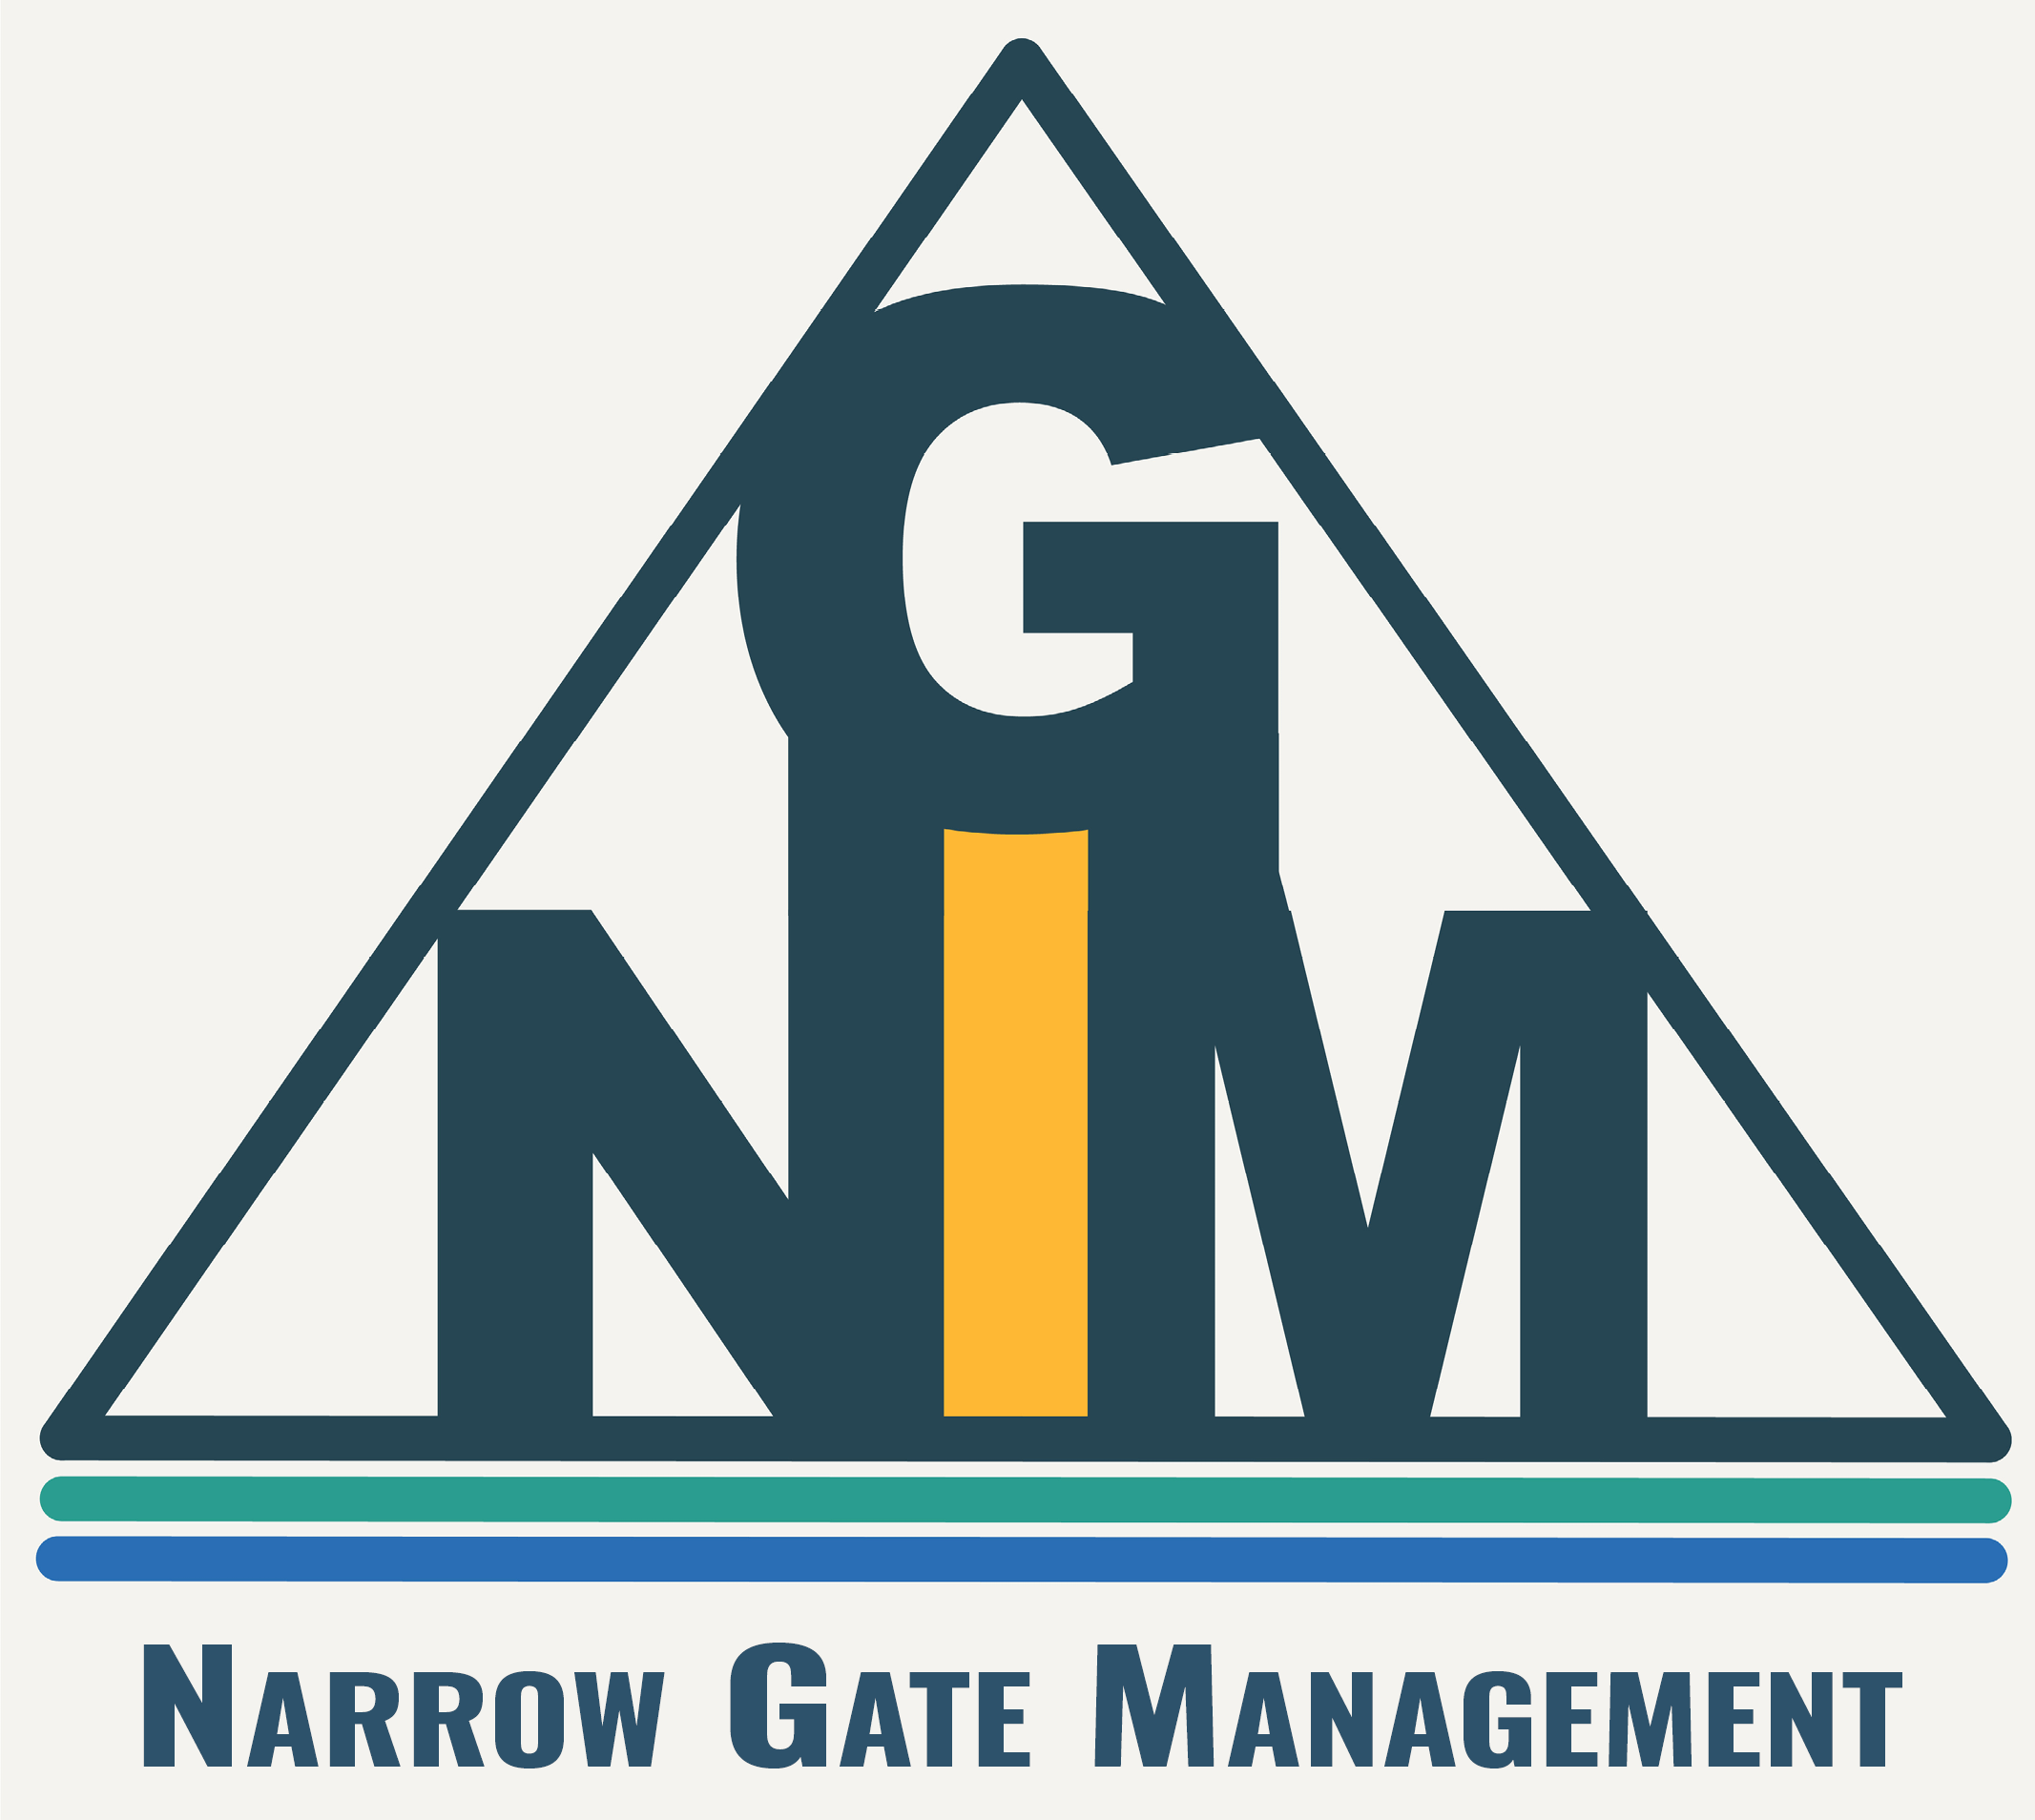 Narrow Gate Management